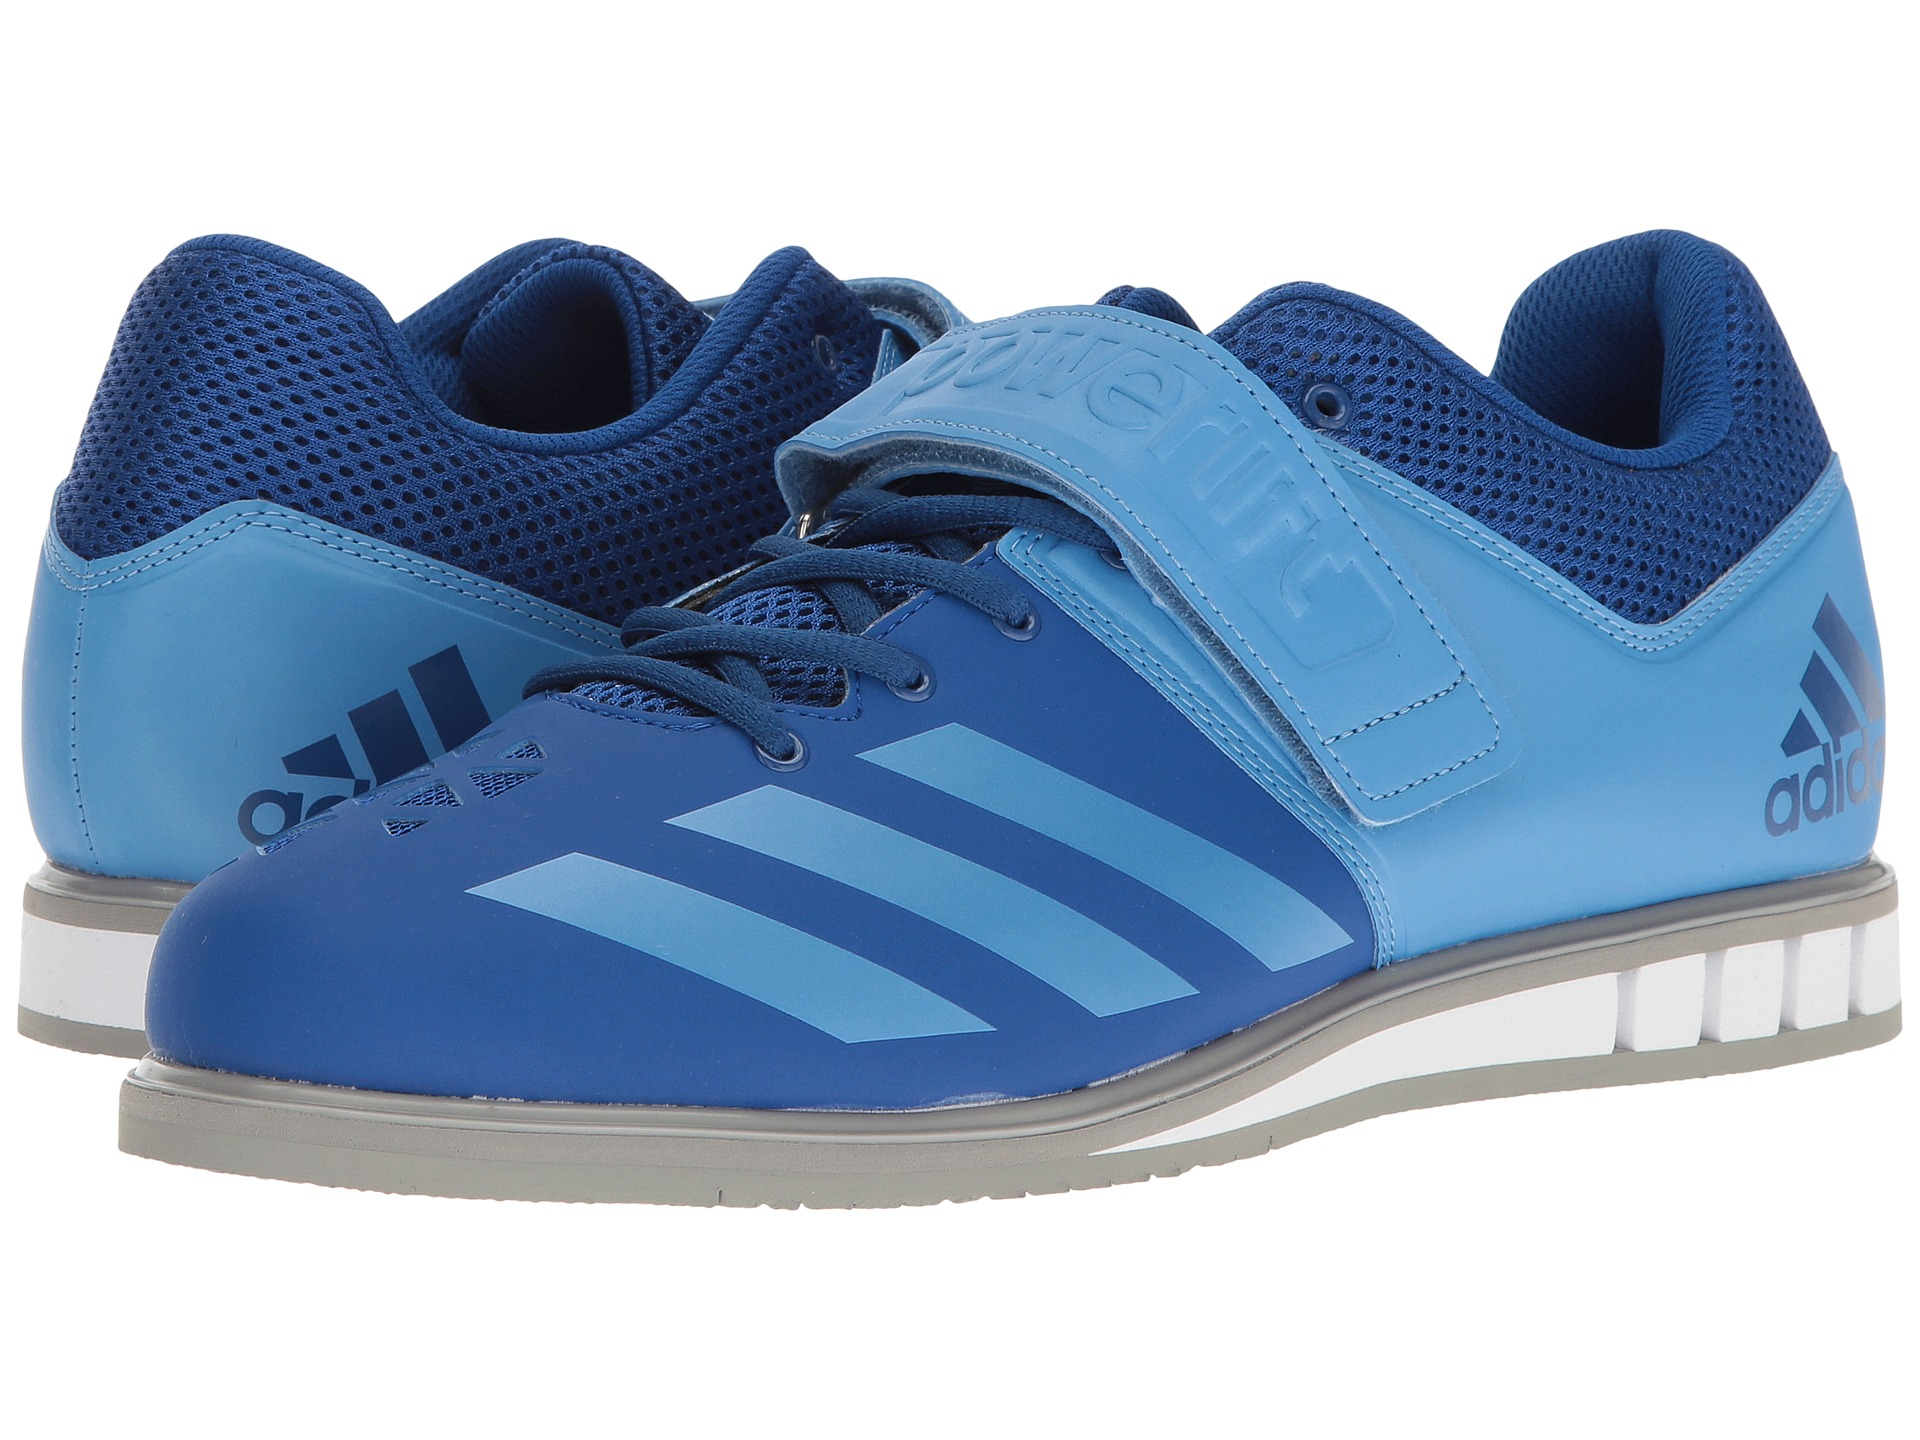 adidas Powerlift 3 at 6pm.com